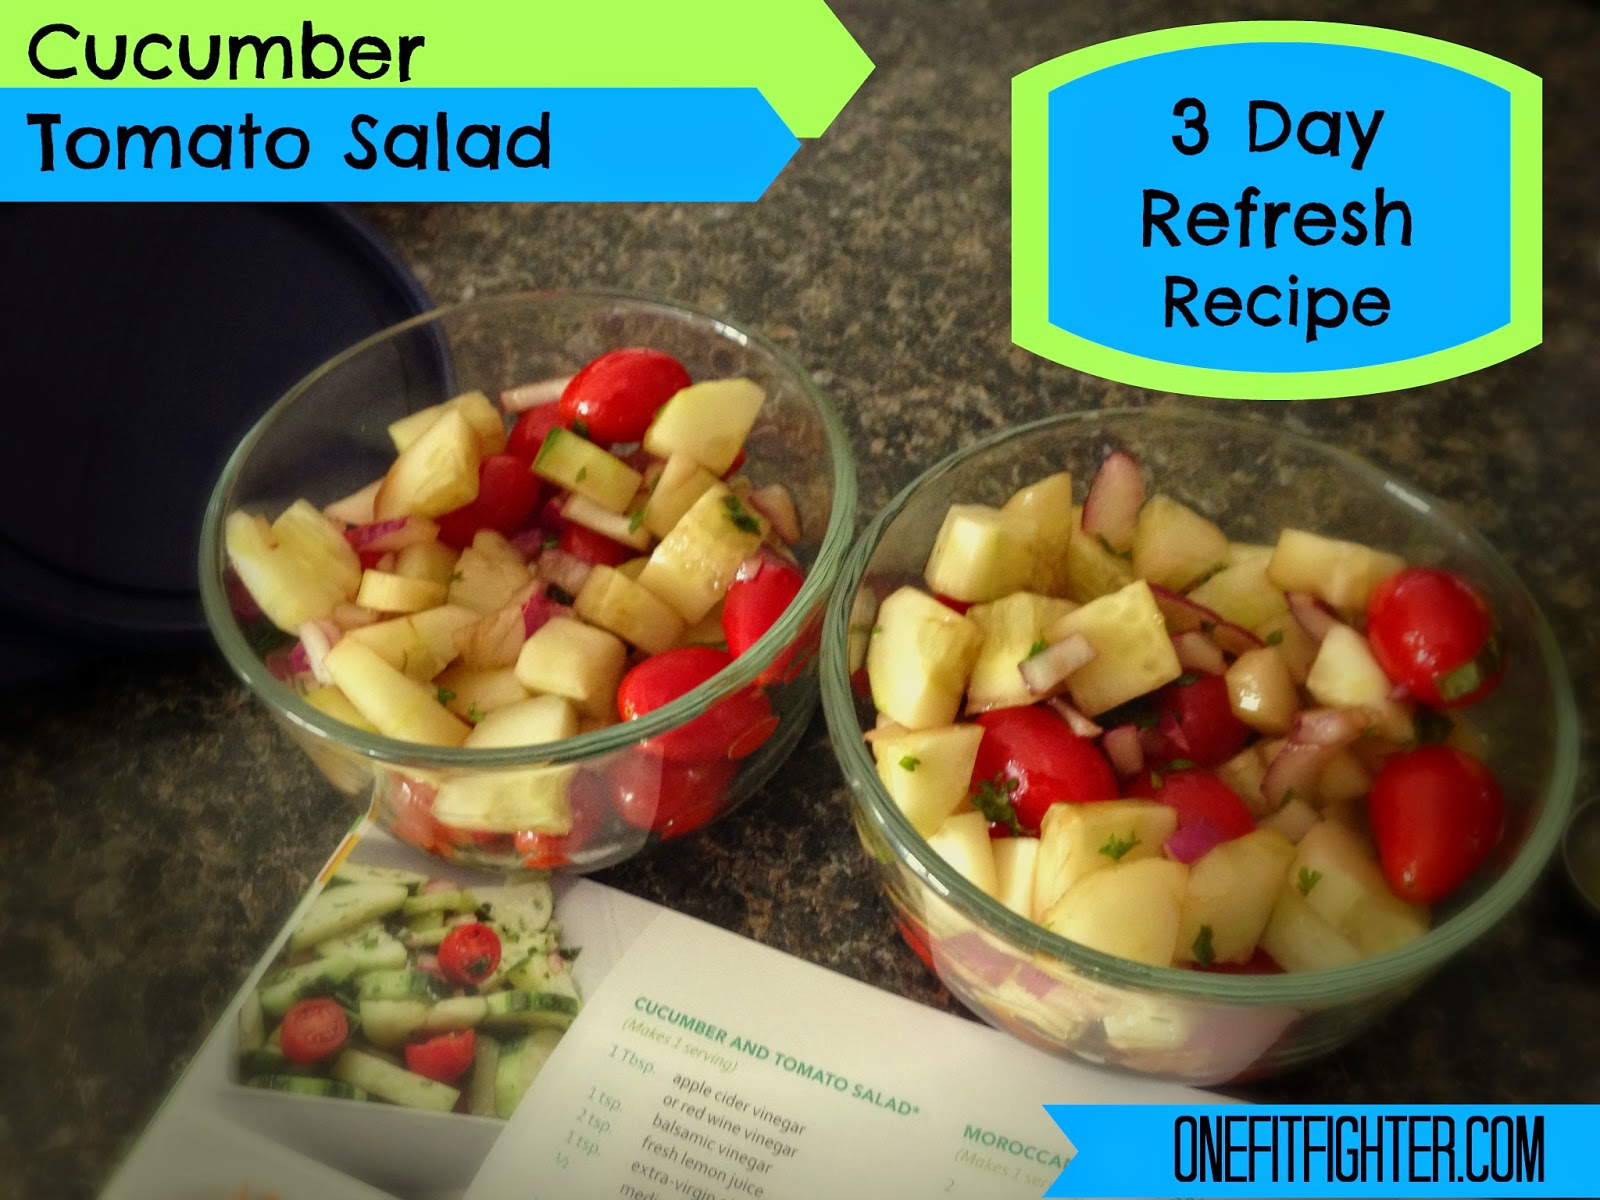 http://www.onefitfighter.com/2014/07/cucumber-tomato-salad-refresh-style.html